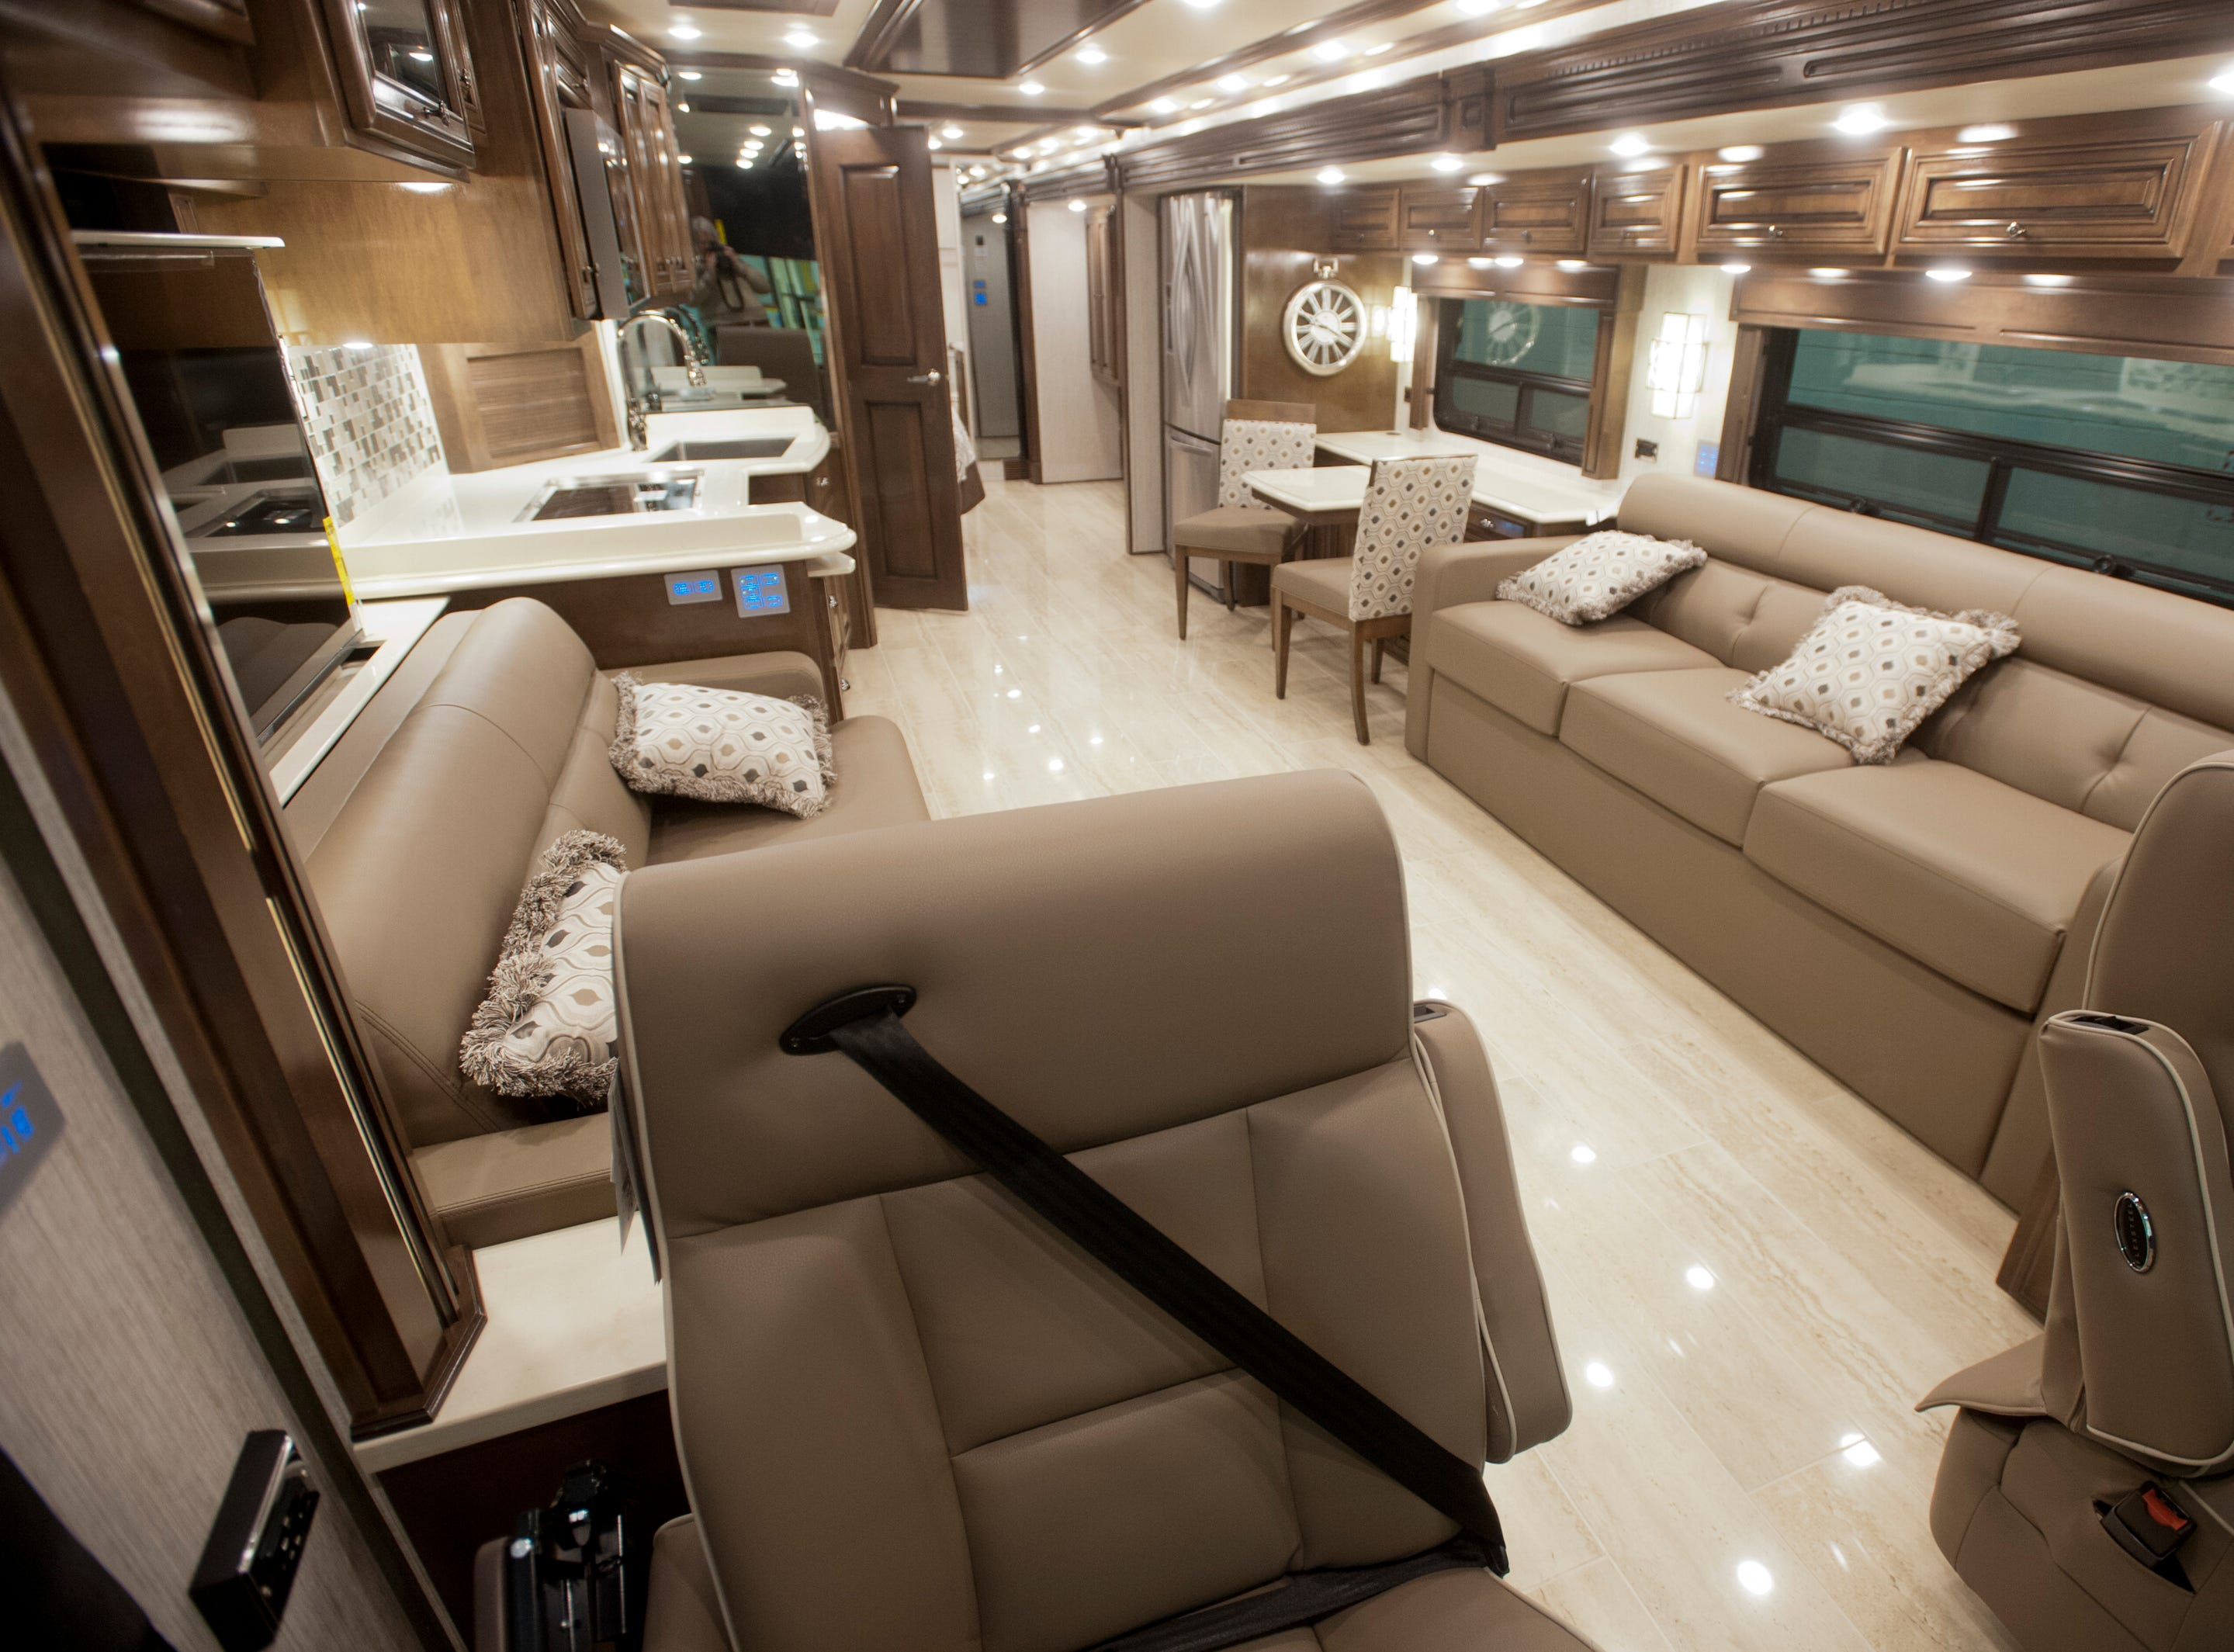 View of the cabin of the Dutch Star from the front passenger seat of the vehicle. The living room includes two couches that convert to beds, a kitchen with an induction stove top, a combination convection and microwave oven, and a steel double-sink. An eating area may be pulled out of the cabinet area in the kitchen, and from a table opposite the kitchen.11 December 2018